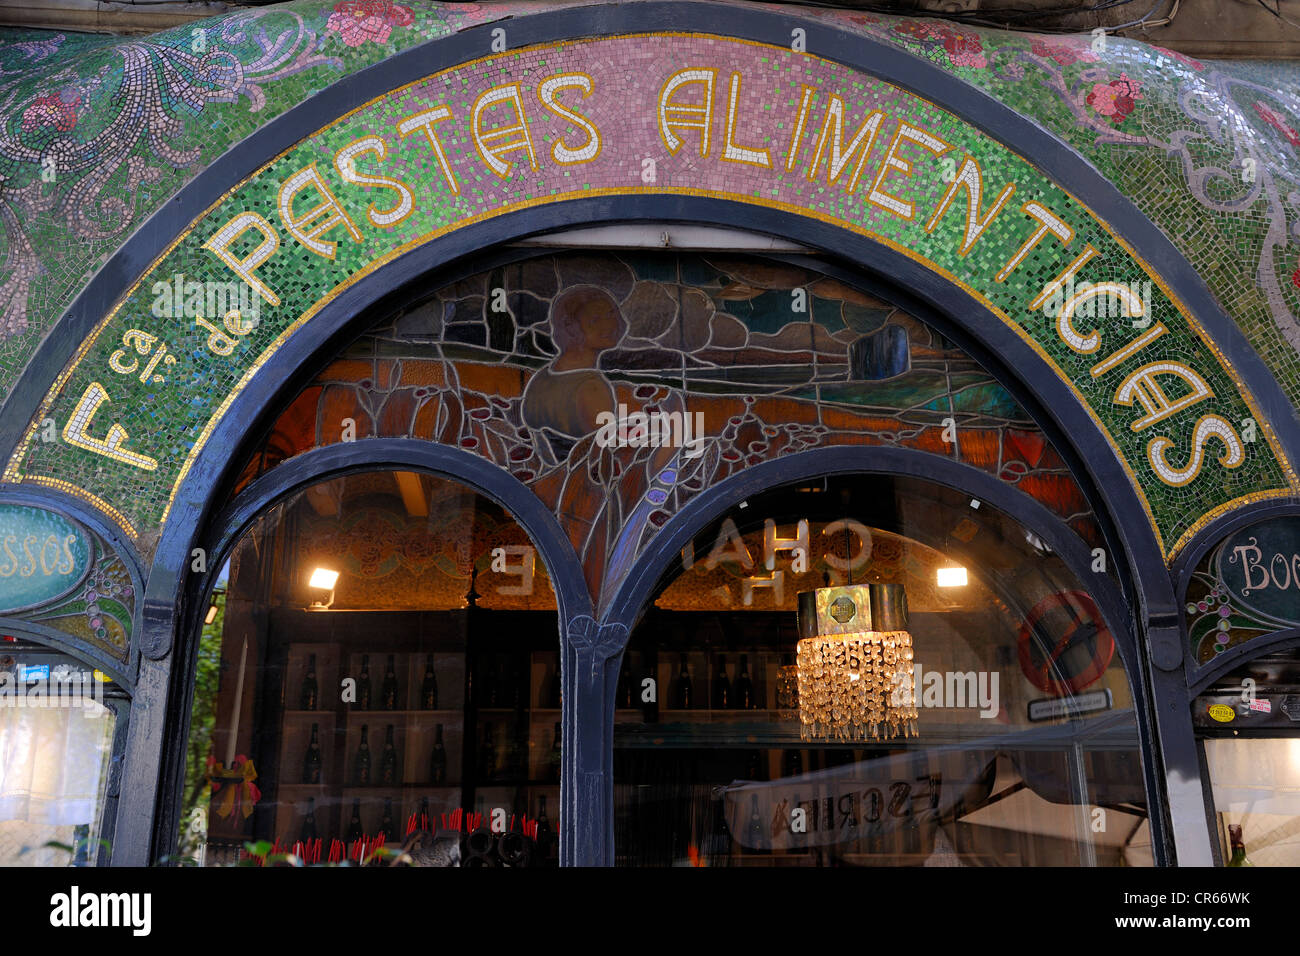 Spain, Catalonia, Barcelona, La Rambla, Escriba chocolate maker and confectionner, Art Nouveau facade of the Modernist - Stock Image